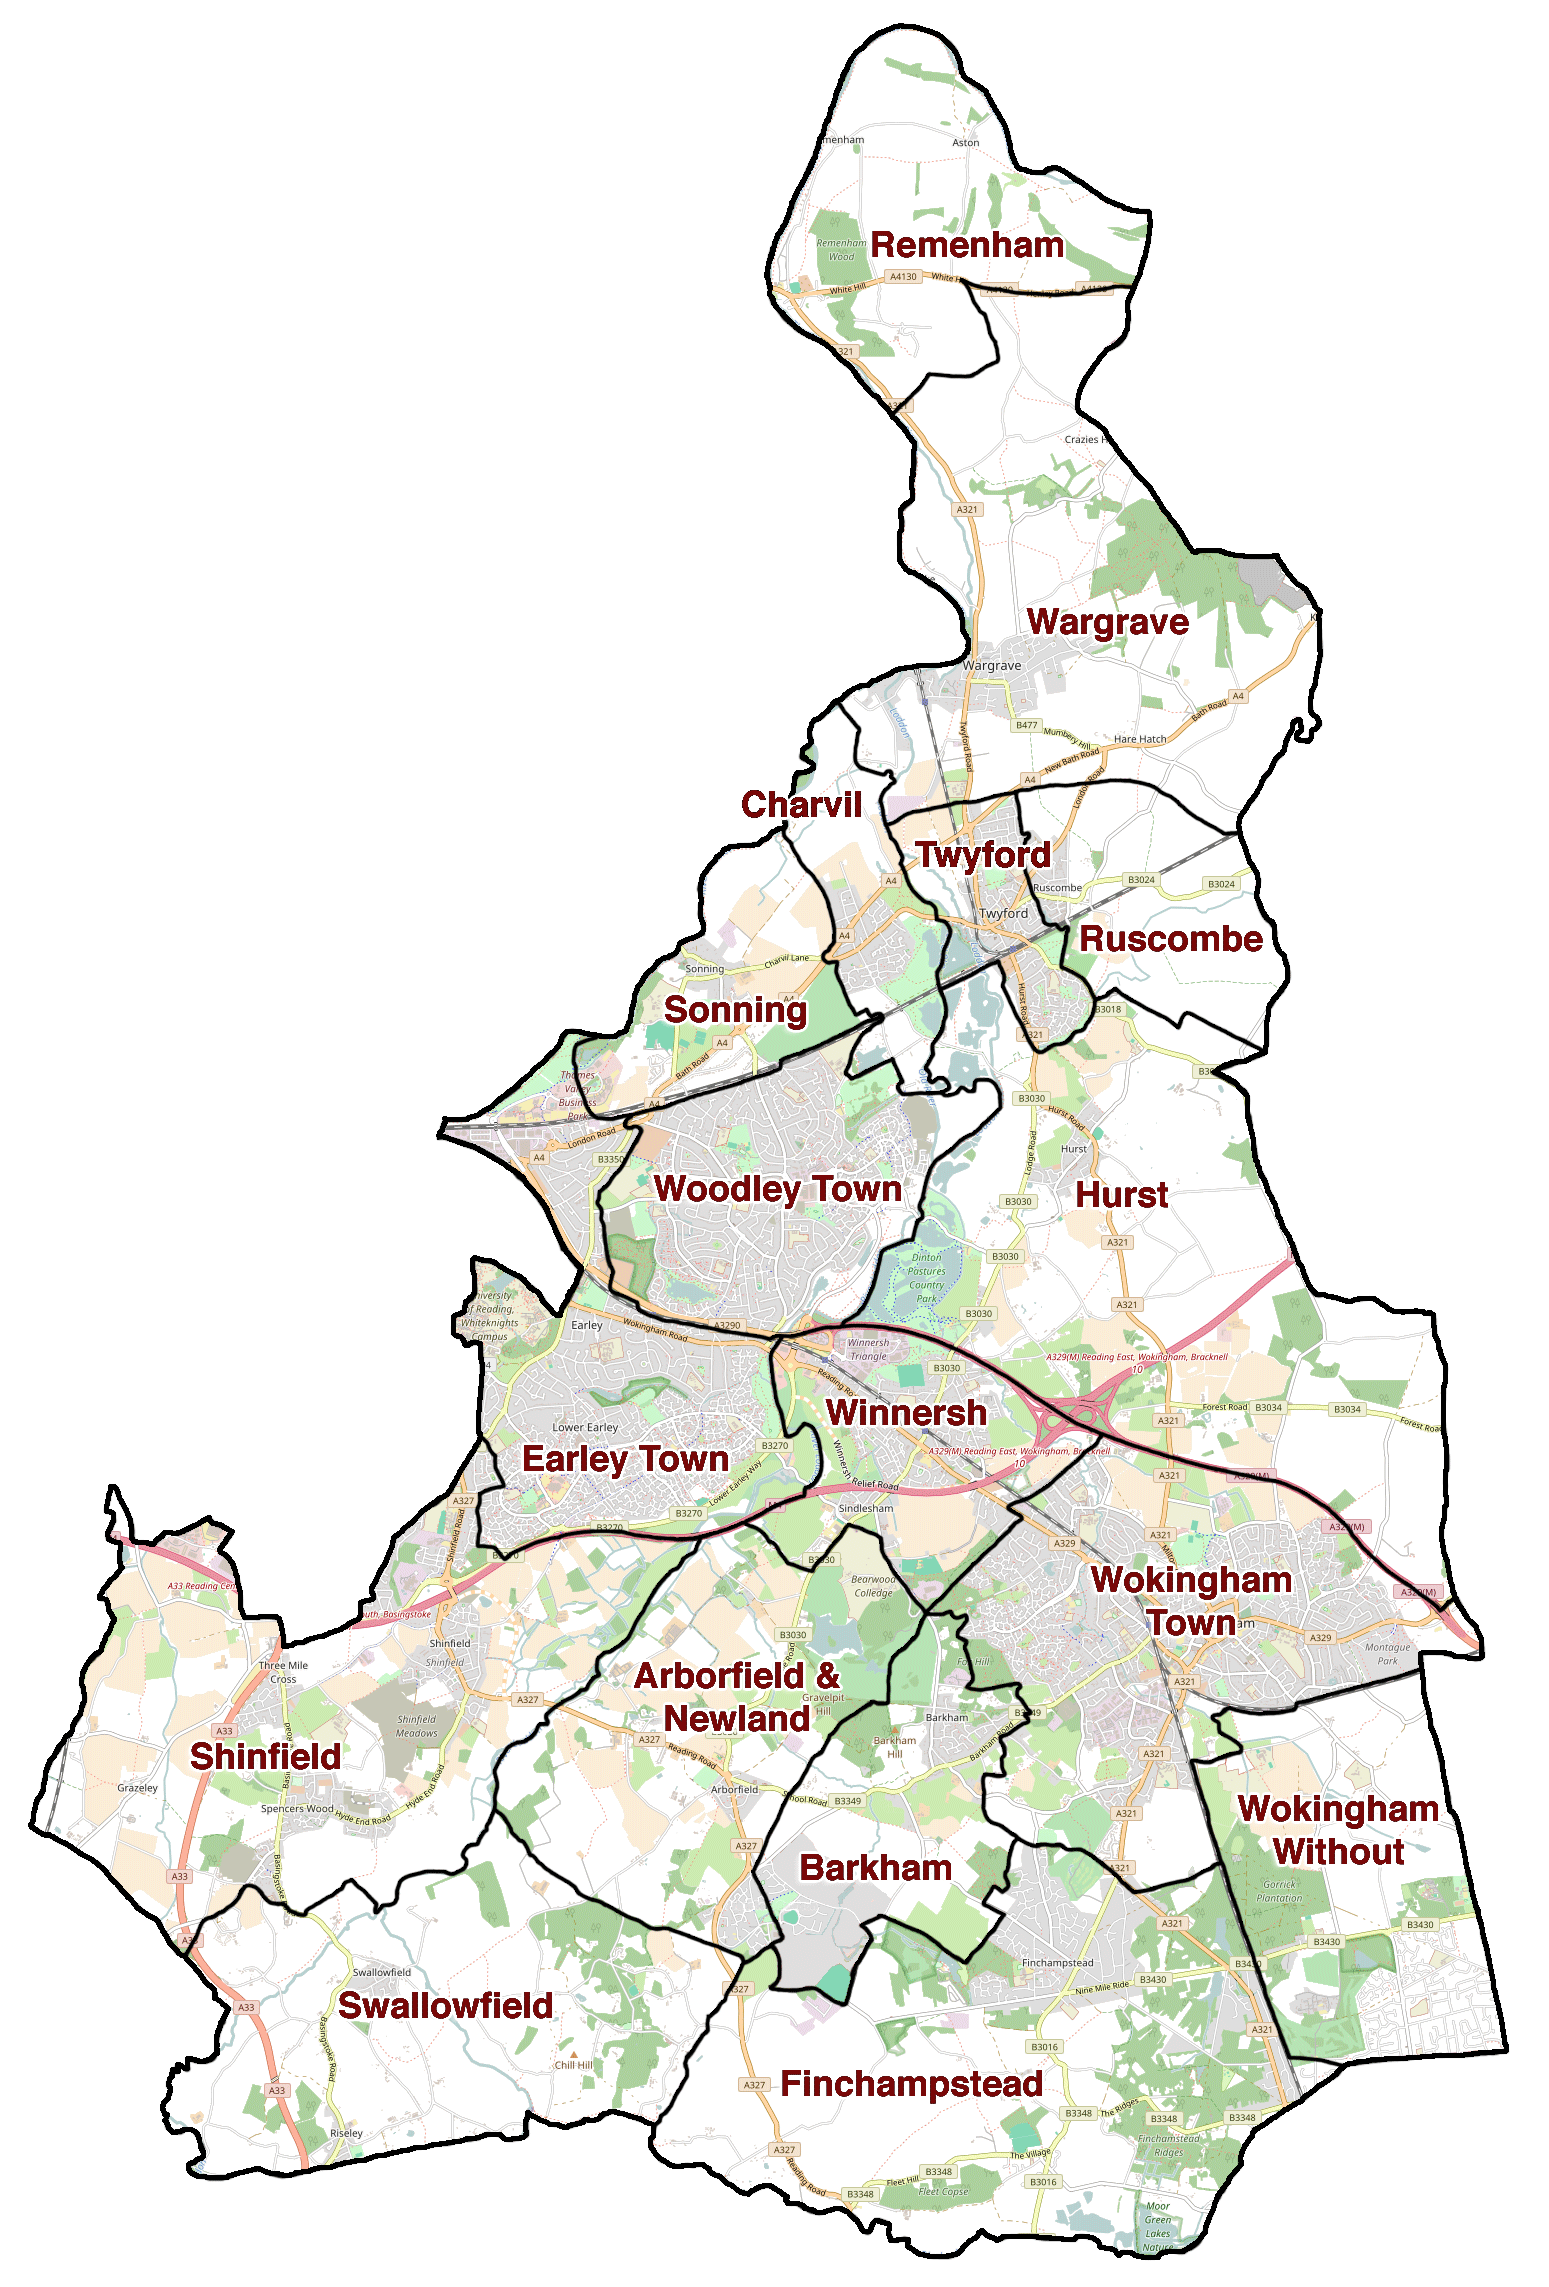 Wokingham parish boundaries